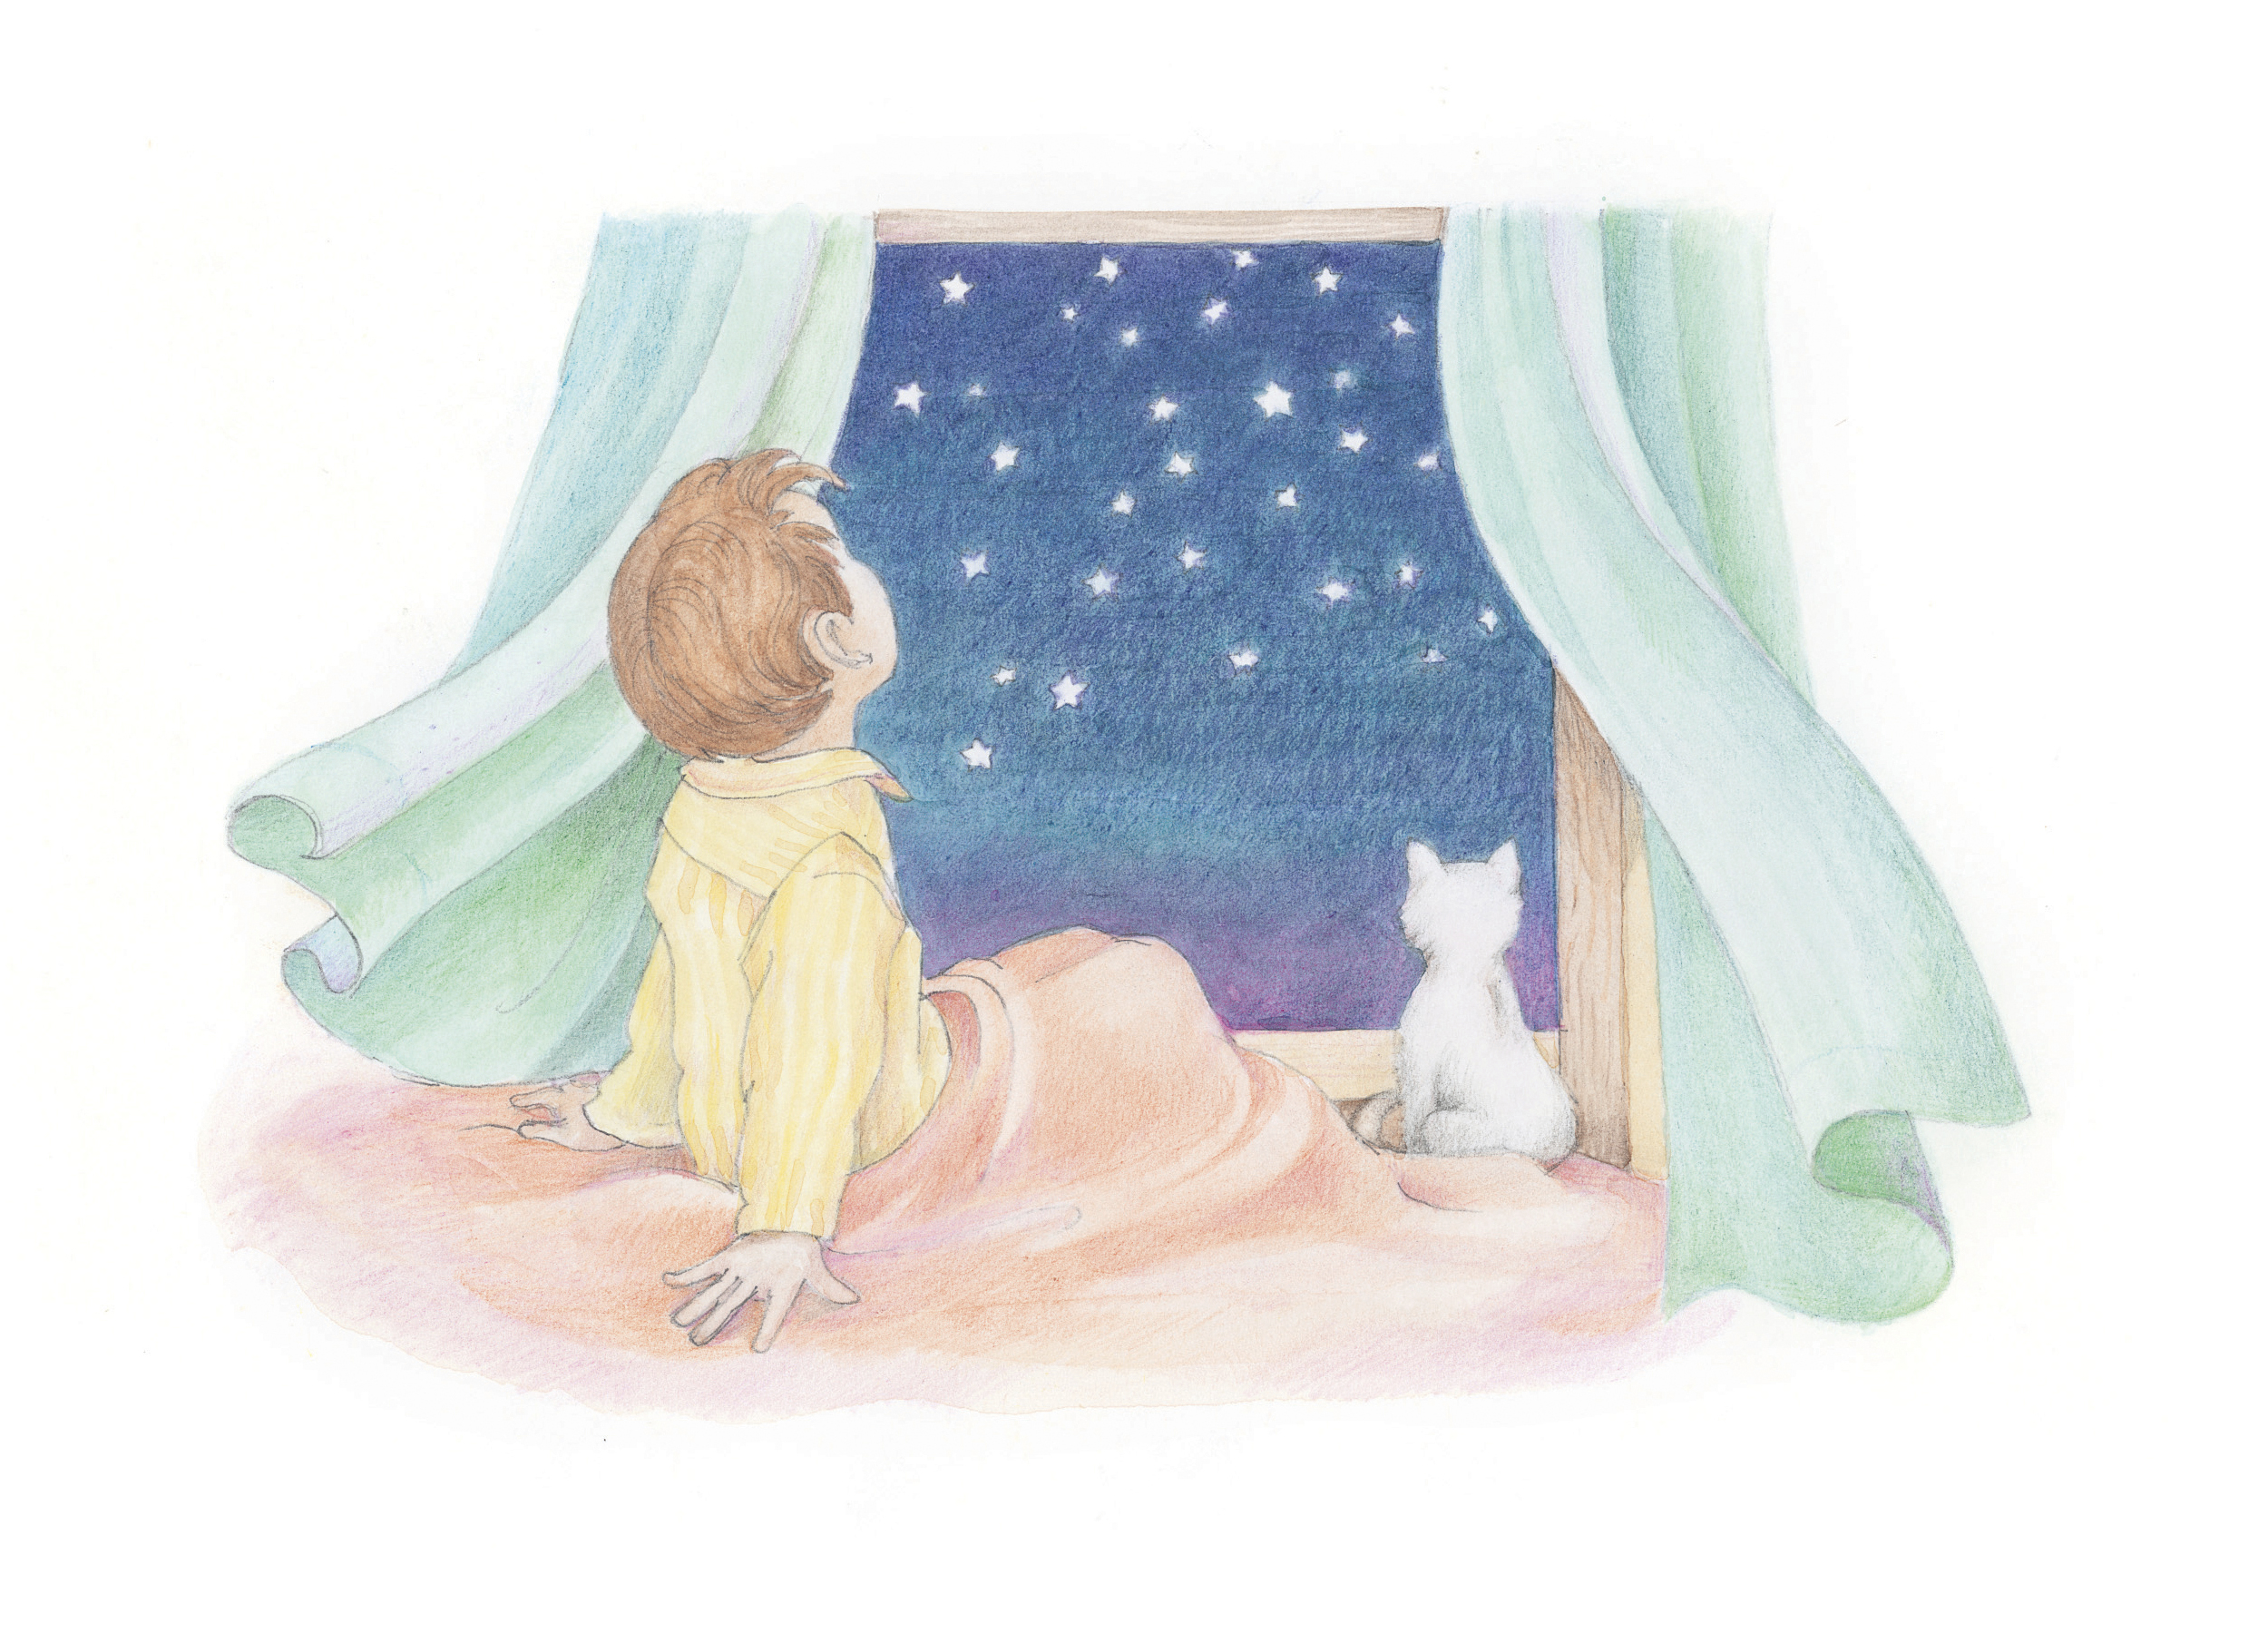 """A boy and his cat looking out the window at the night sky. From the Children's Songbook, page 8, """"Father, We Thank Thee for the Night""""; watercolor illustration by Phyllis Luch."""